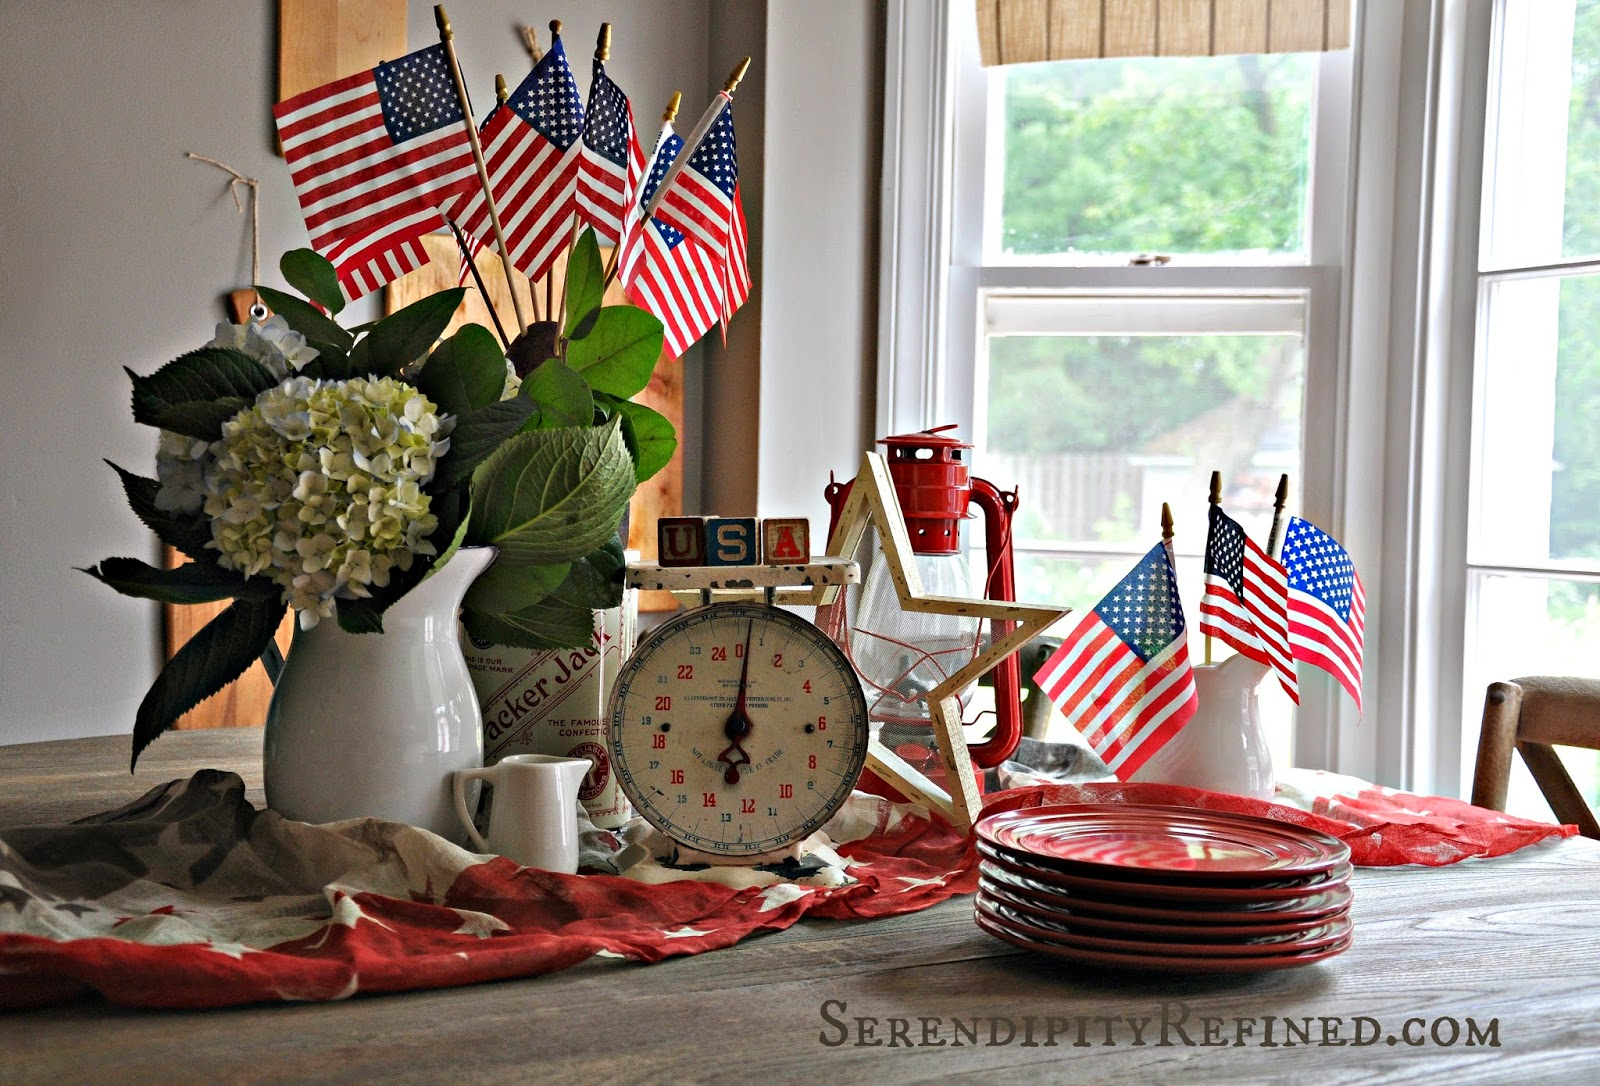 Serendipity Refined Blog: Vintage 4th Of July: Red White